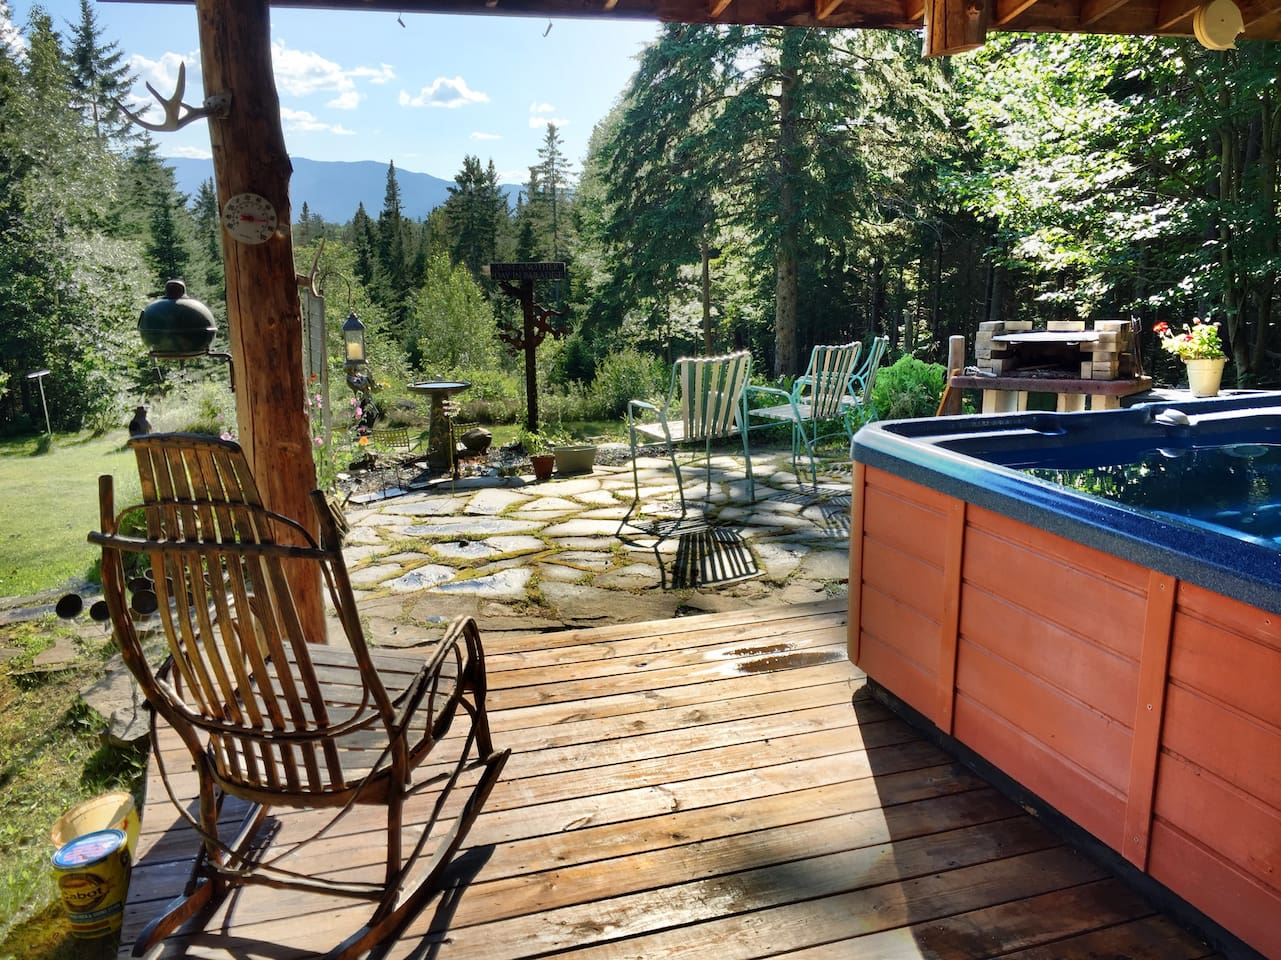 Hot tub deck and patio overlooking the back yard, gardens and view to the West